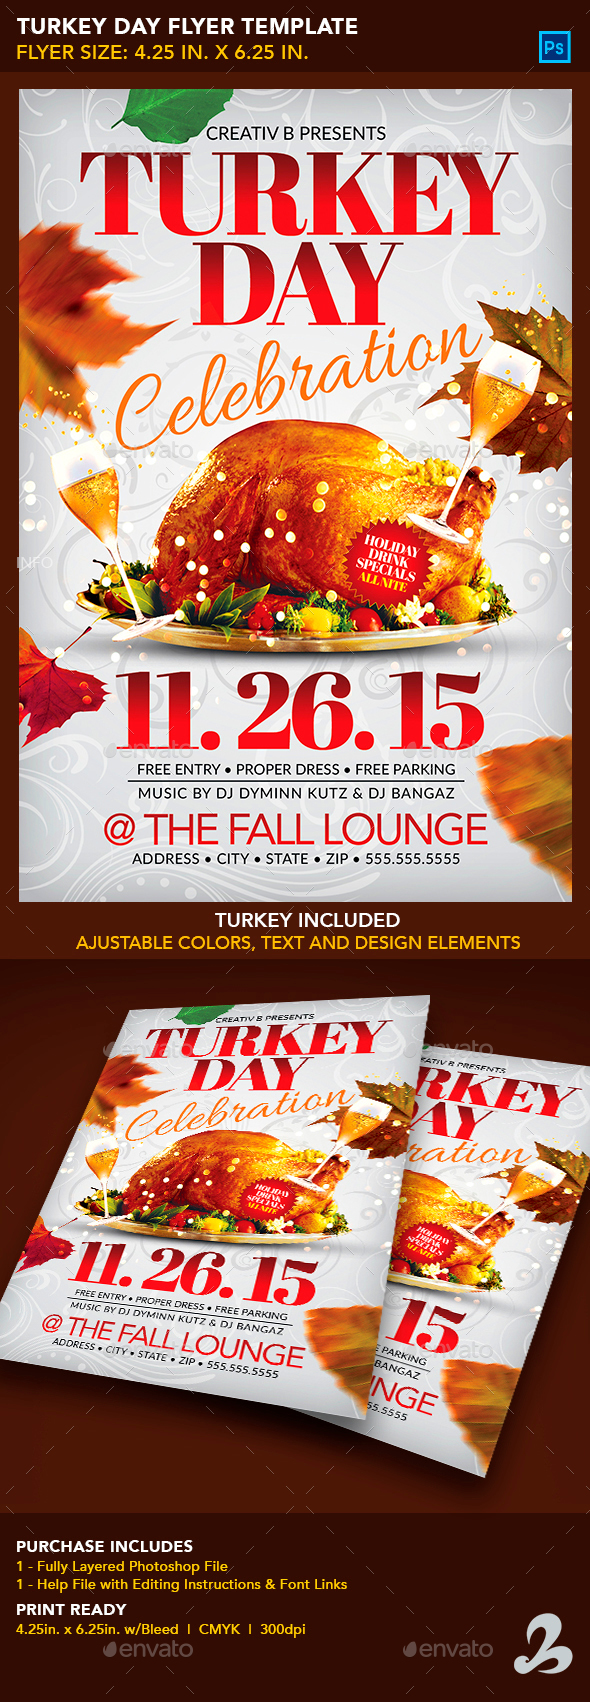 Turkey Day Flyer Template